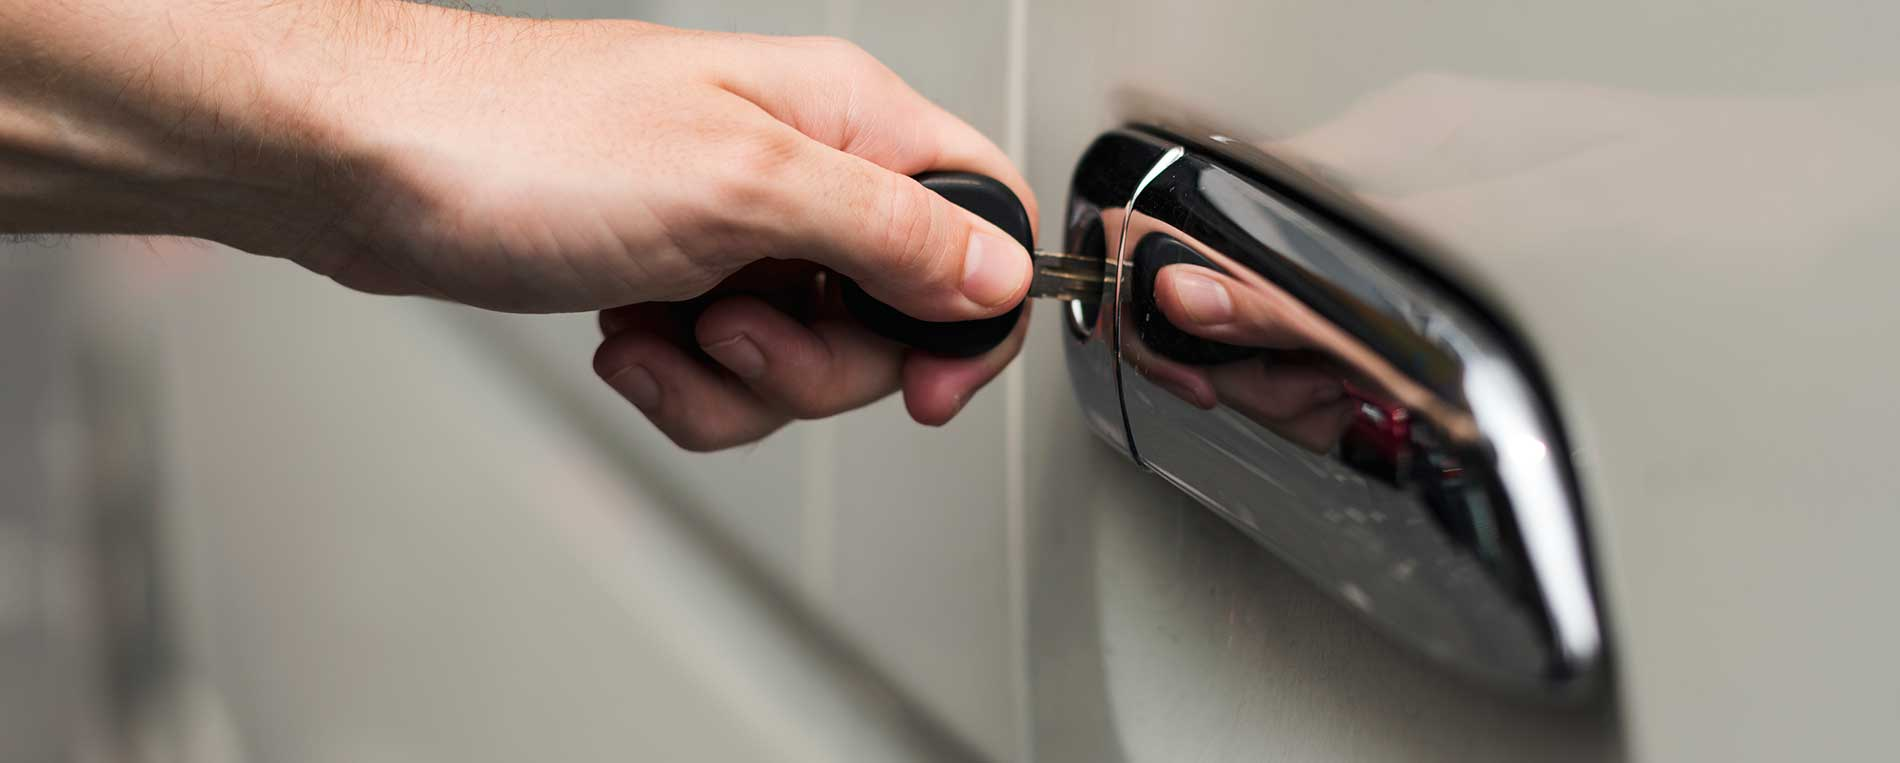 Discover the best benefits of having a car locksmith